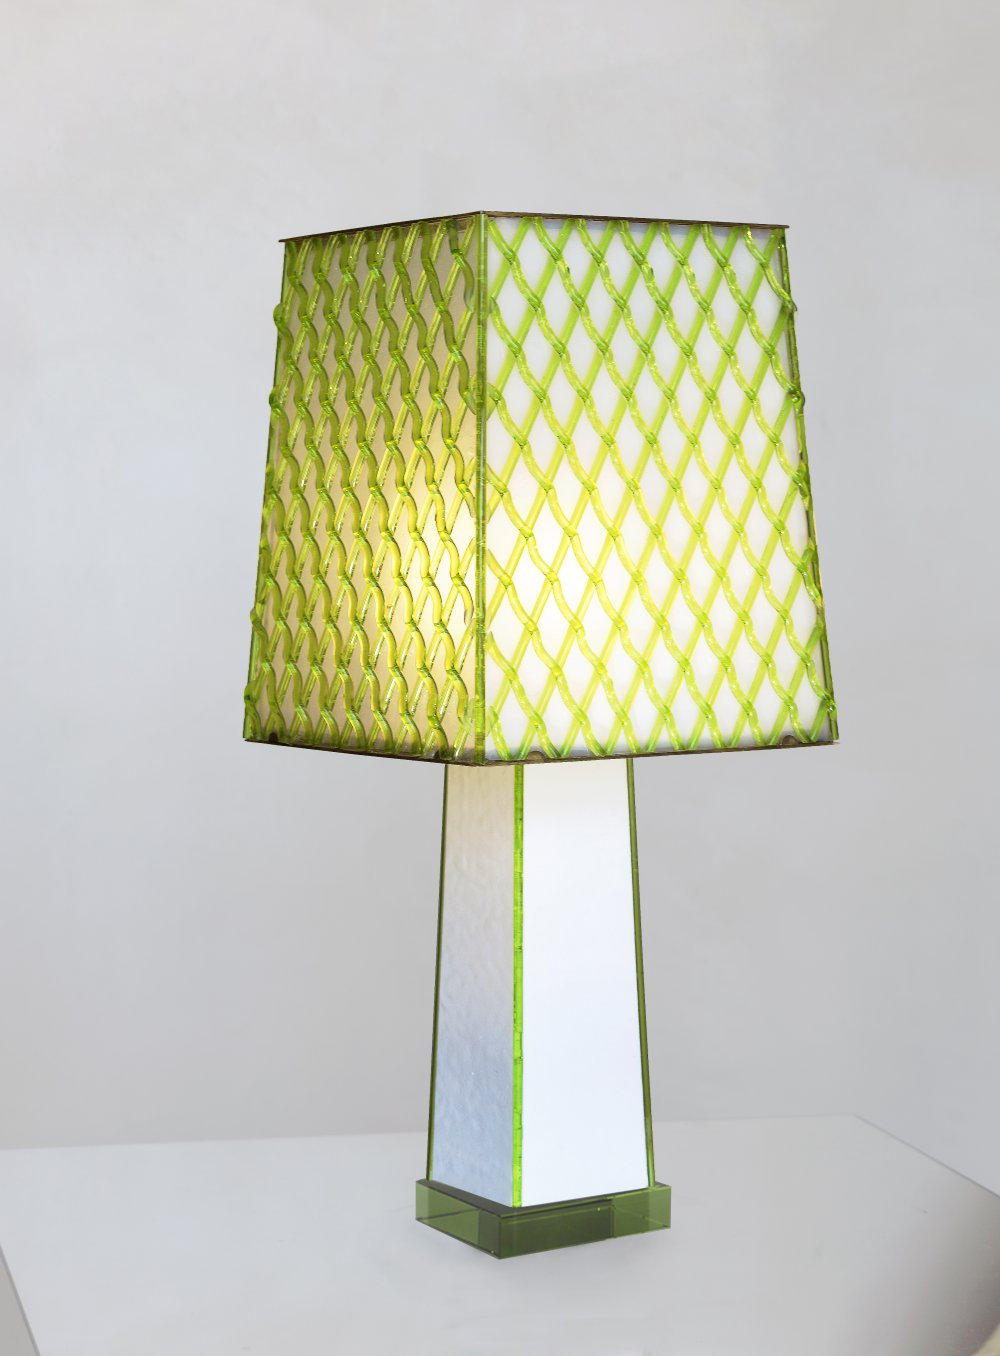 Table Lamp 'Grate'